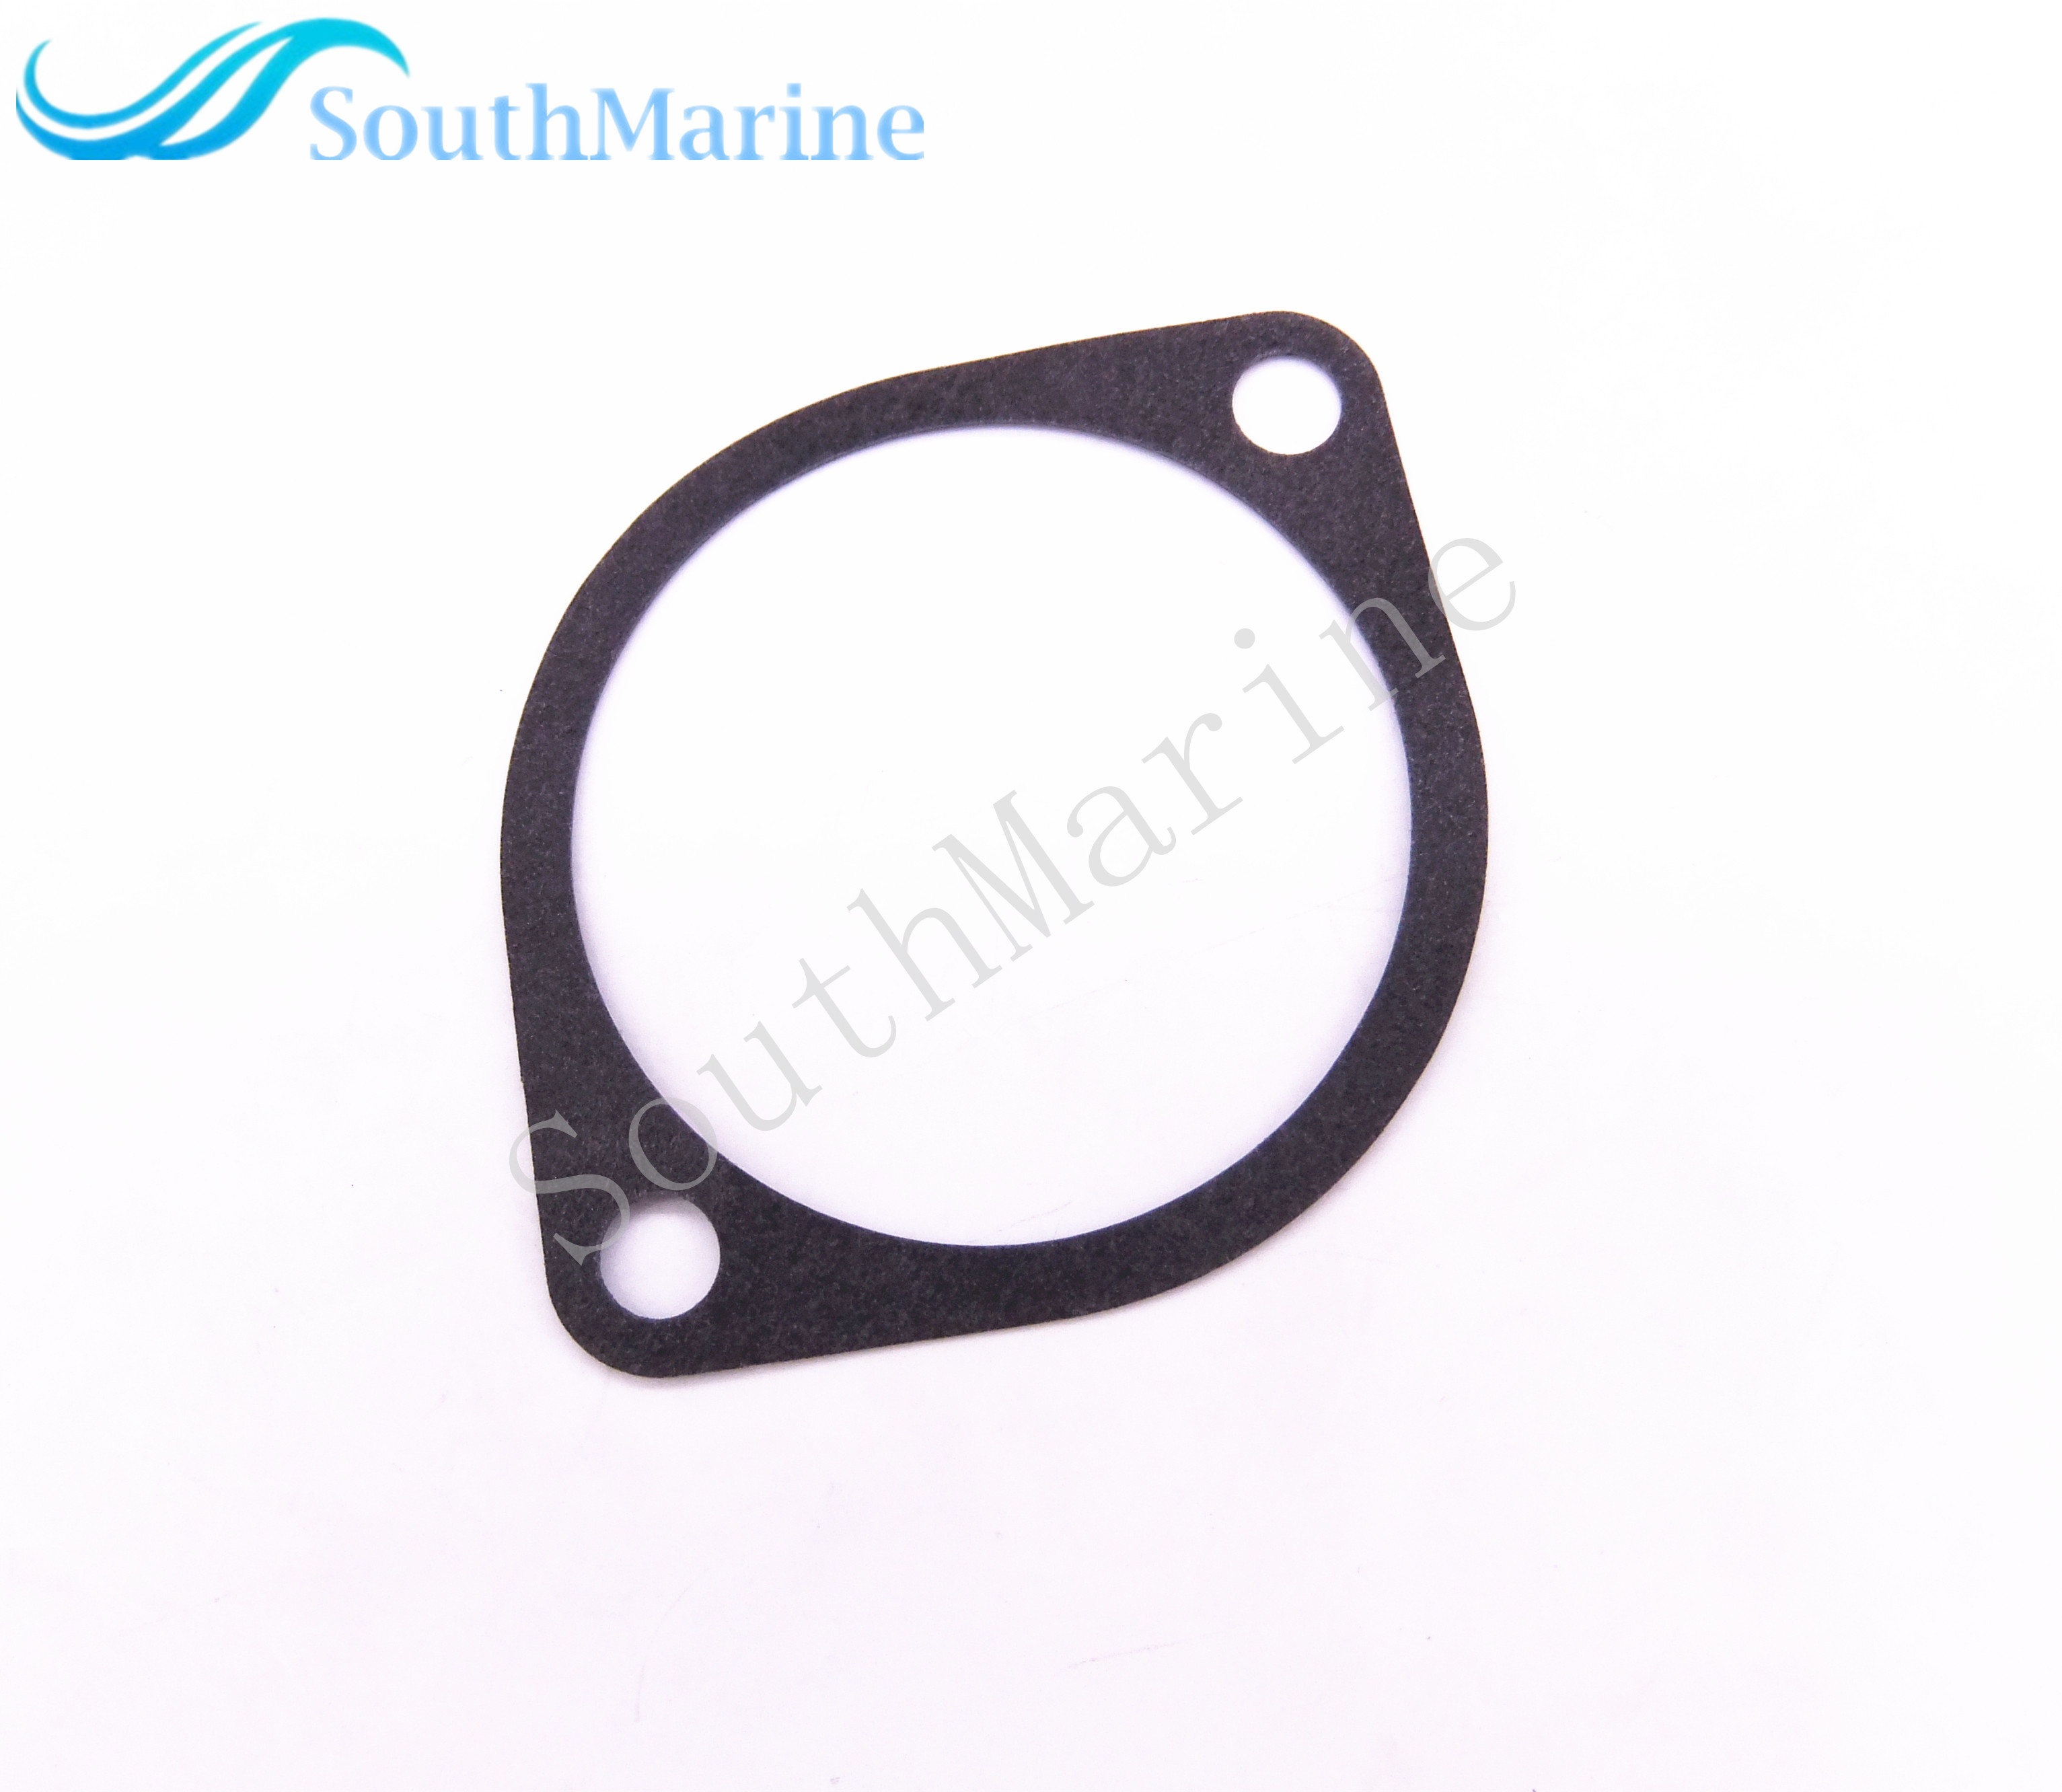 Outboard Engine T8-05000006 Oil Seal Casing Gasket for Parsun 2-Stroke T6 T8 T9.8 Boat Motor Free Shipping